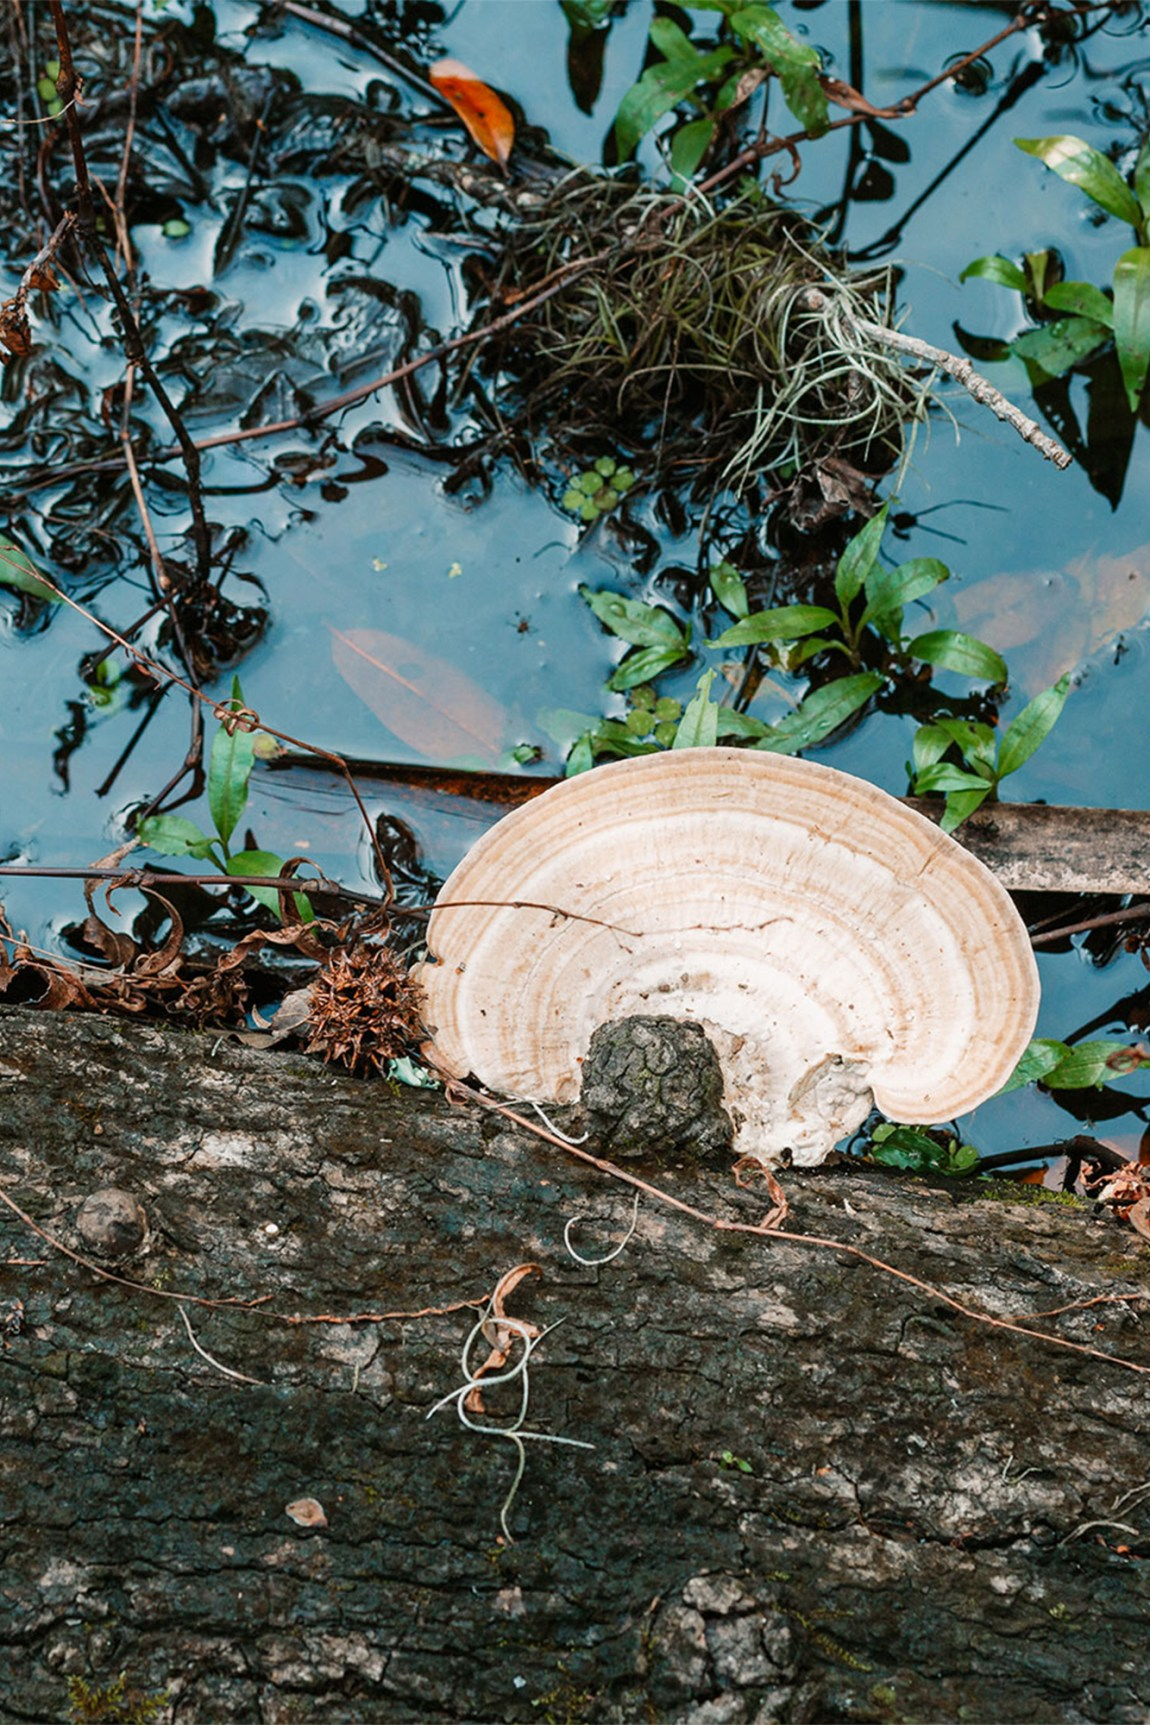 A mushroom grows from a tree trunk in the swamp